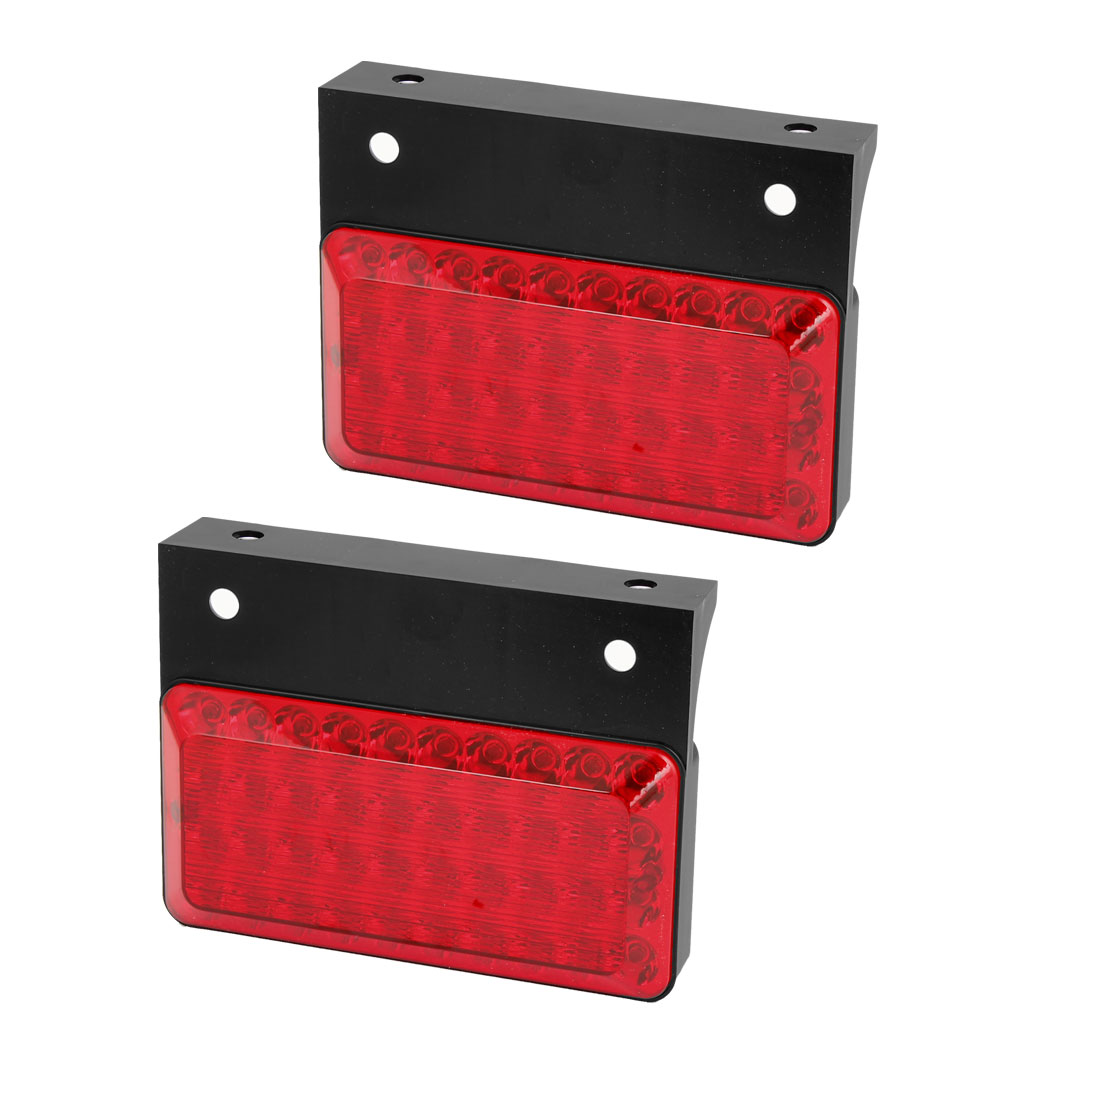 2 Pcs Rectangle Red 40 LED Stopping Signal Turn Tail Light Lamp for Auto Car